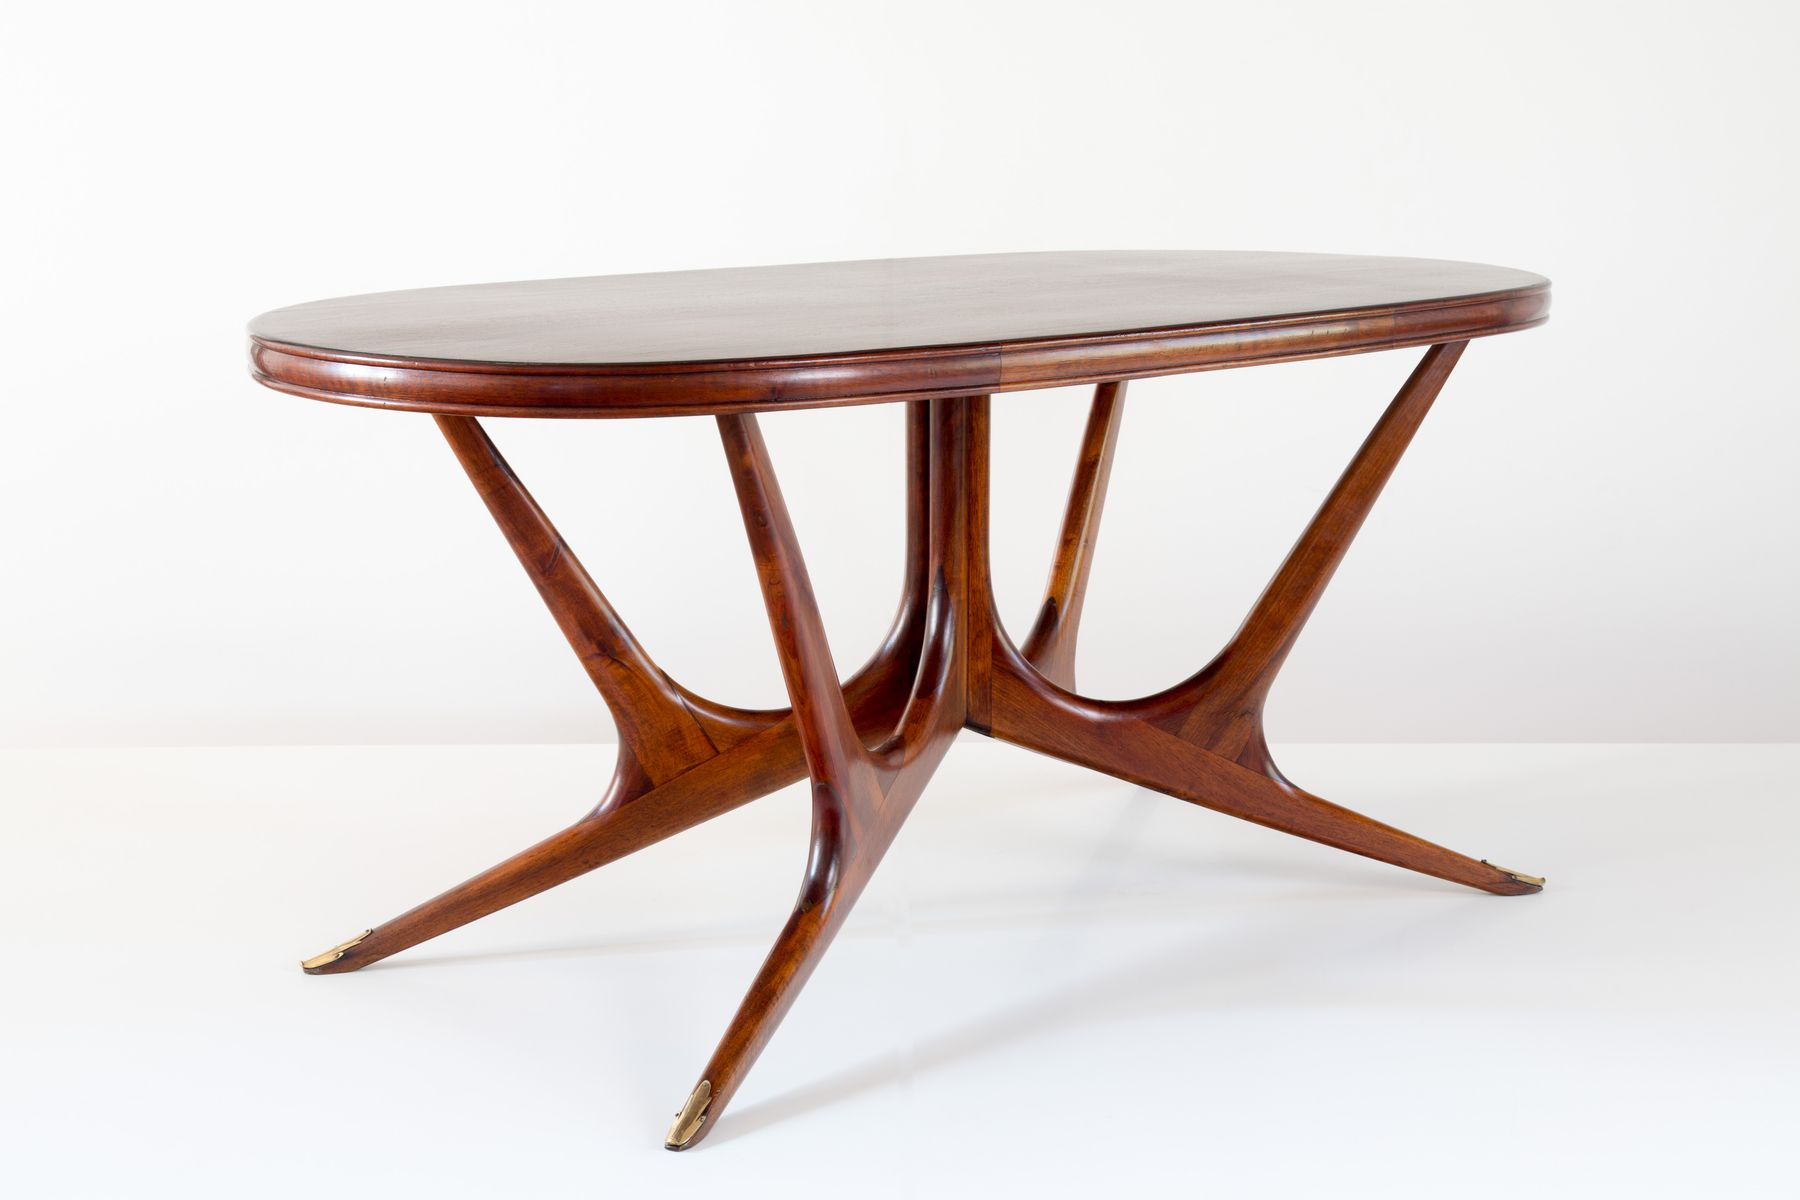 Sculptural italian dining table 1940s for sale at pamono for Italian dining table